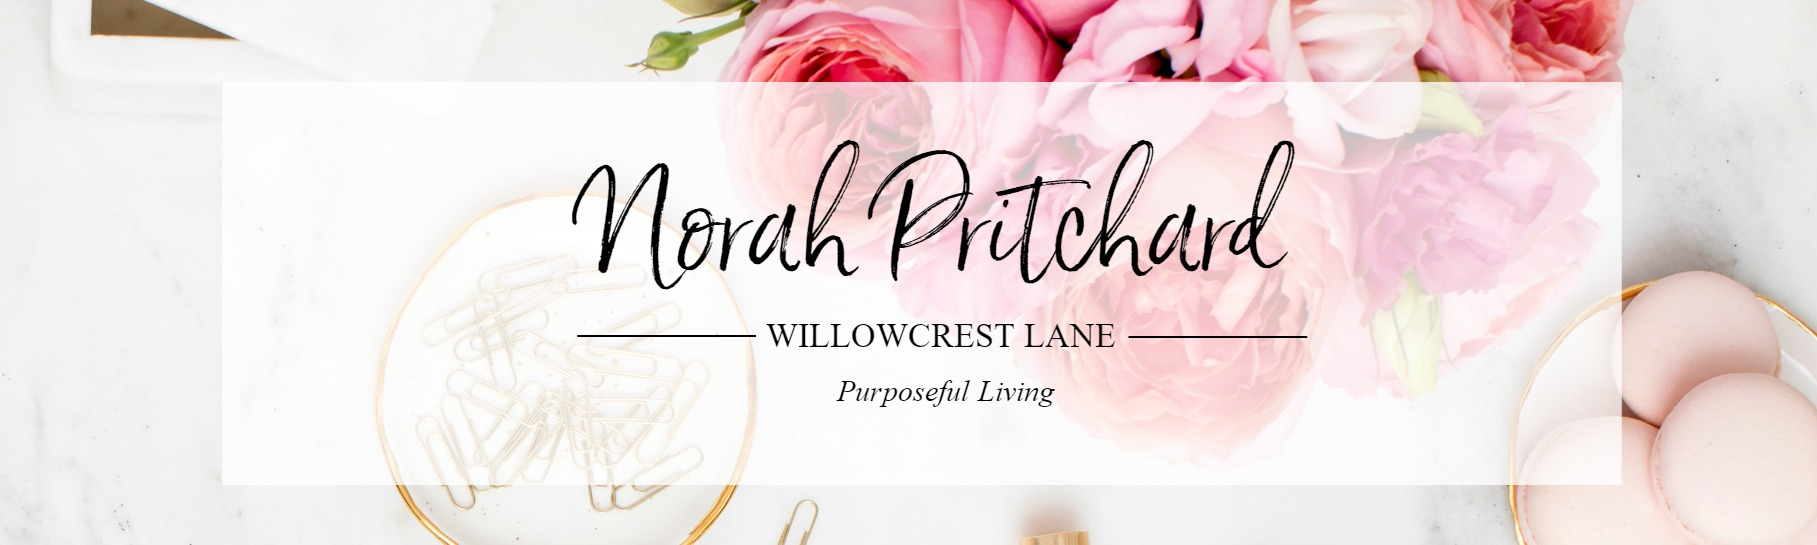 Norah Pritchard I Willowcrest Lane